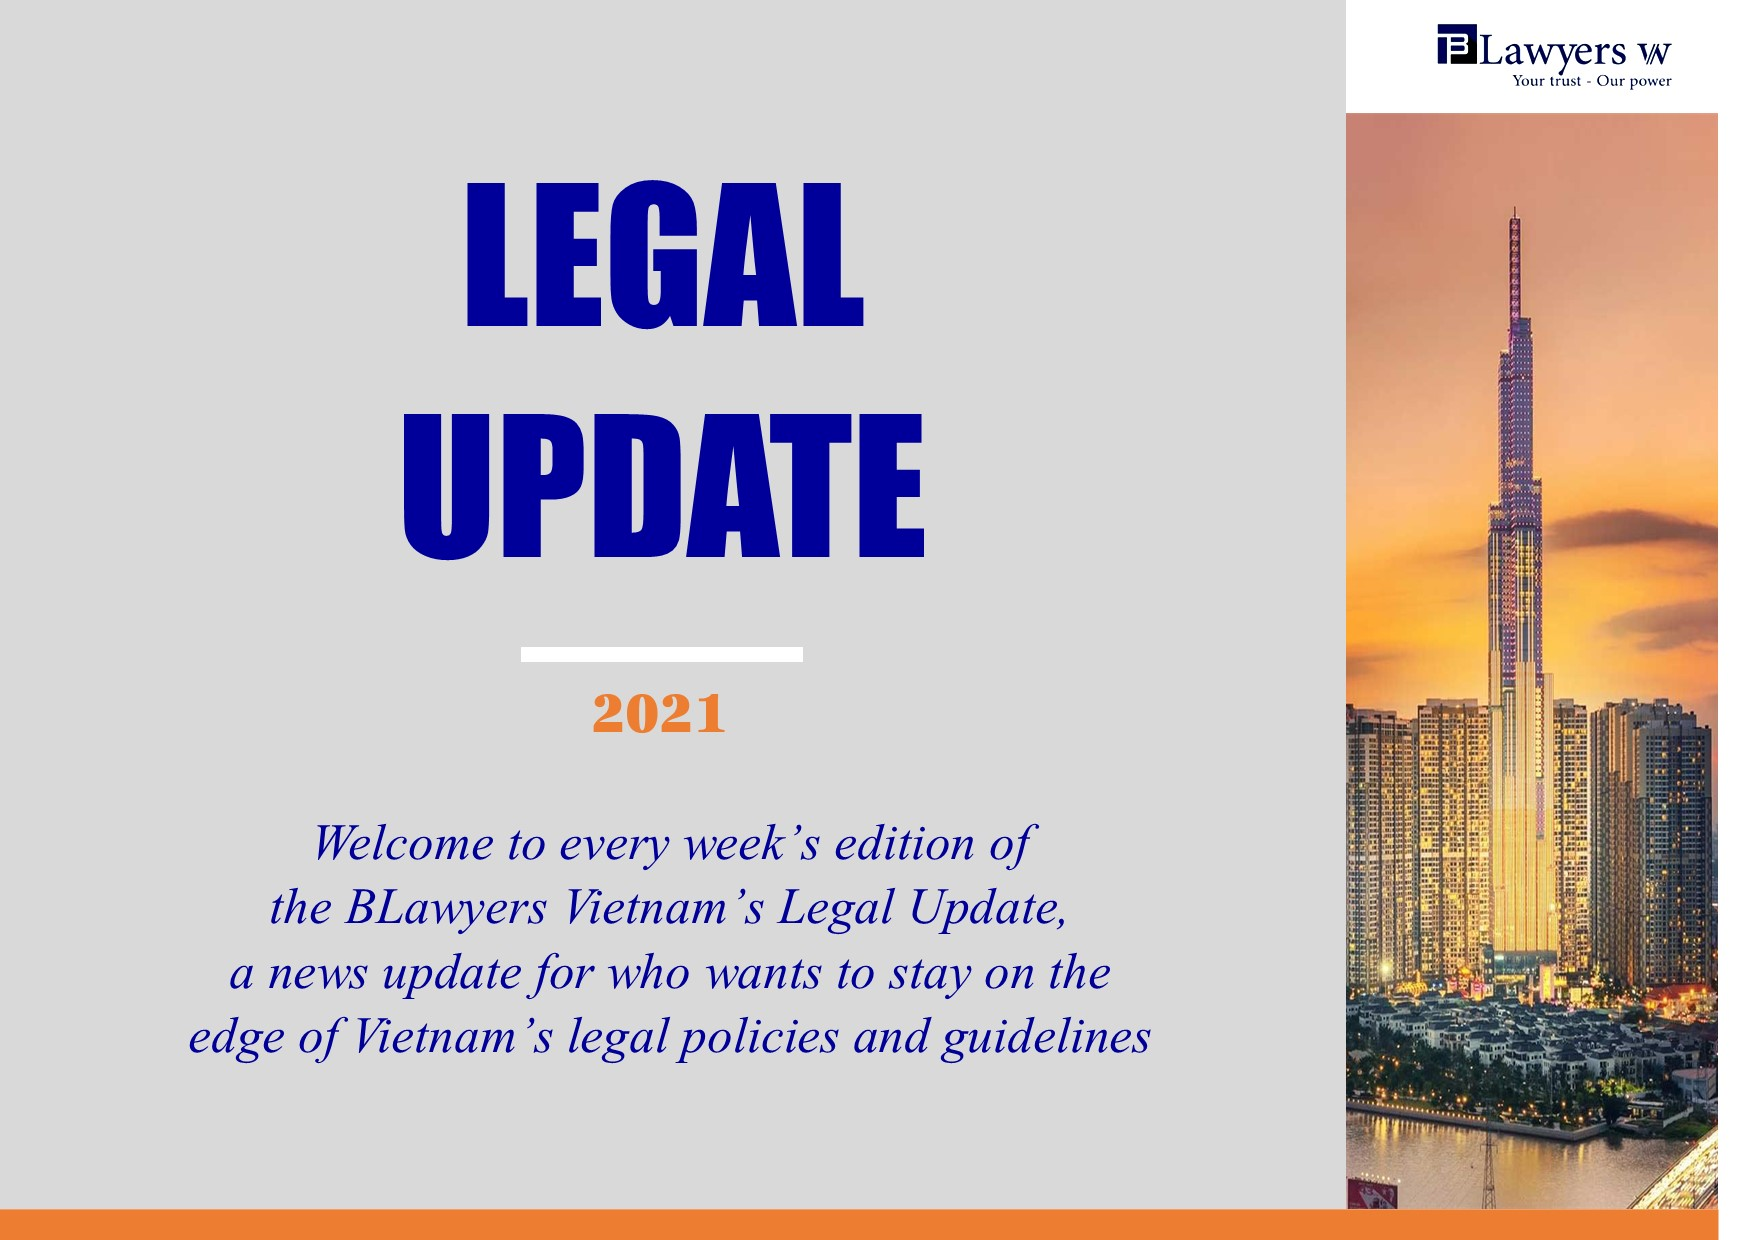 BLawyers Vietnam - Legal update